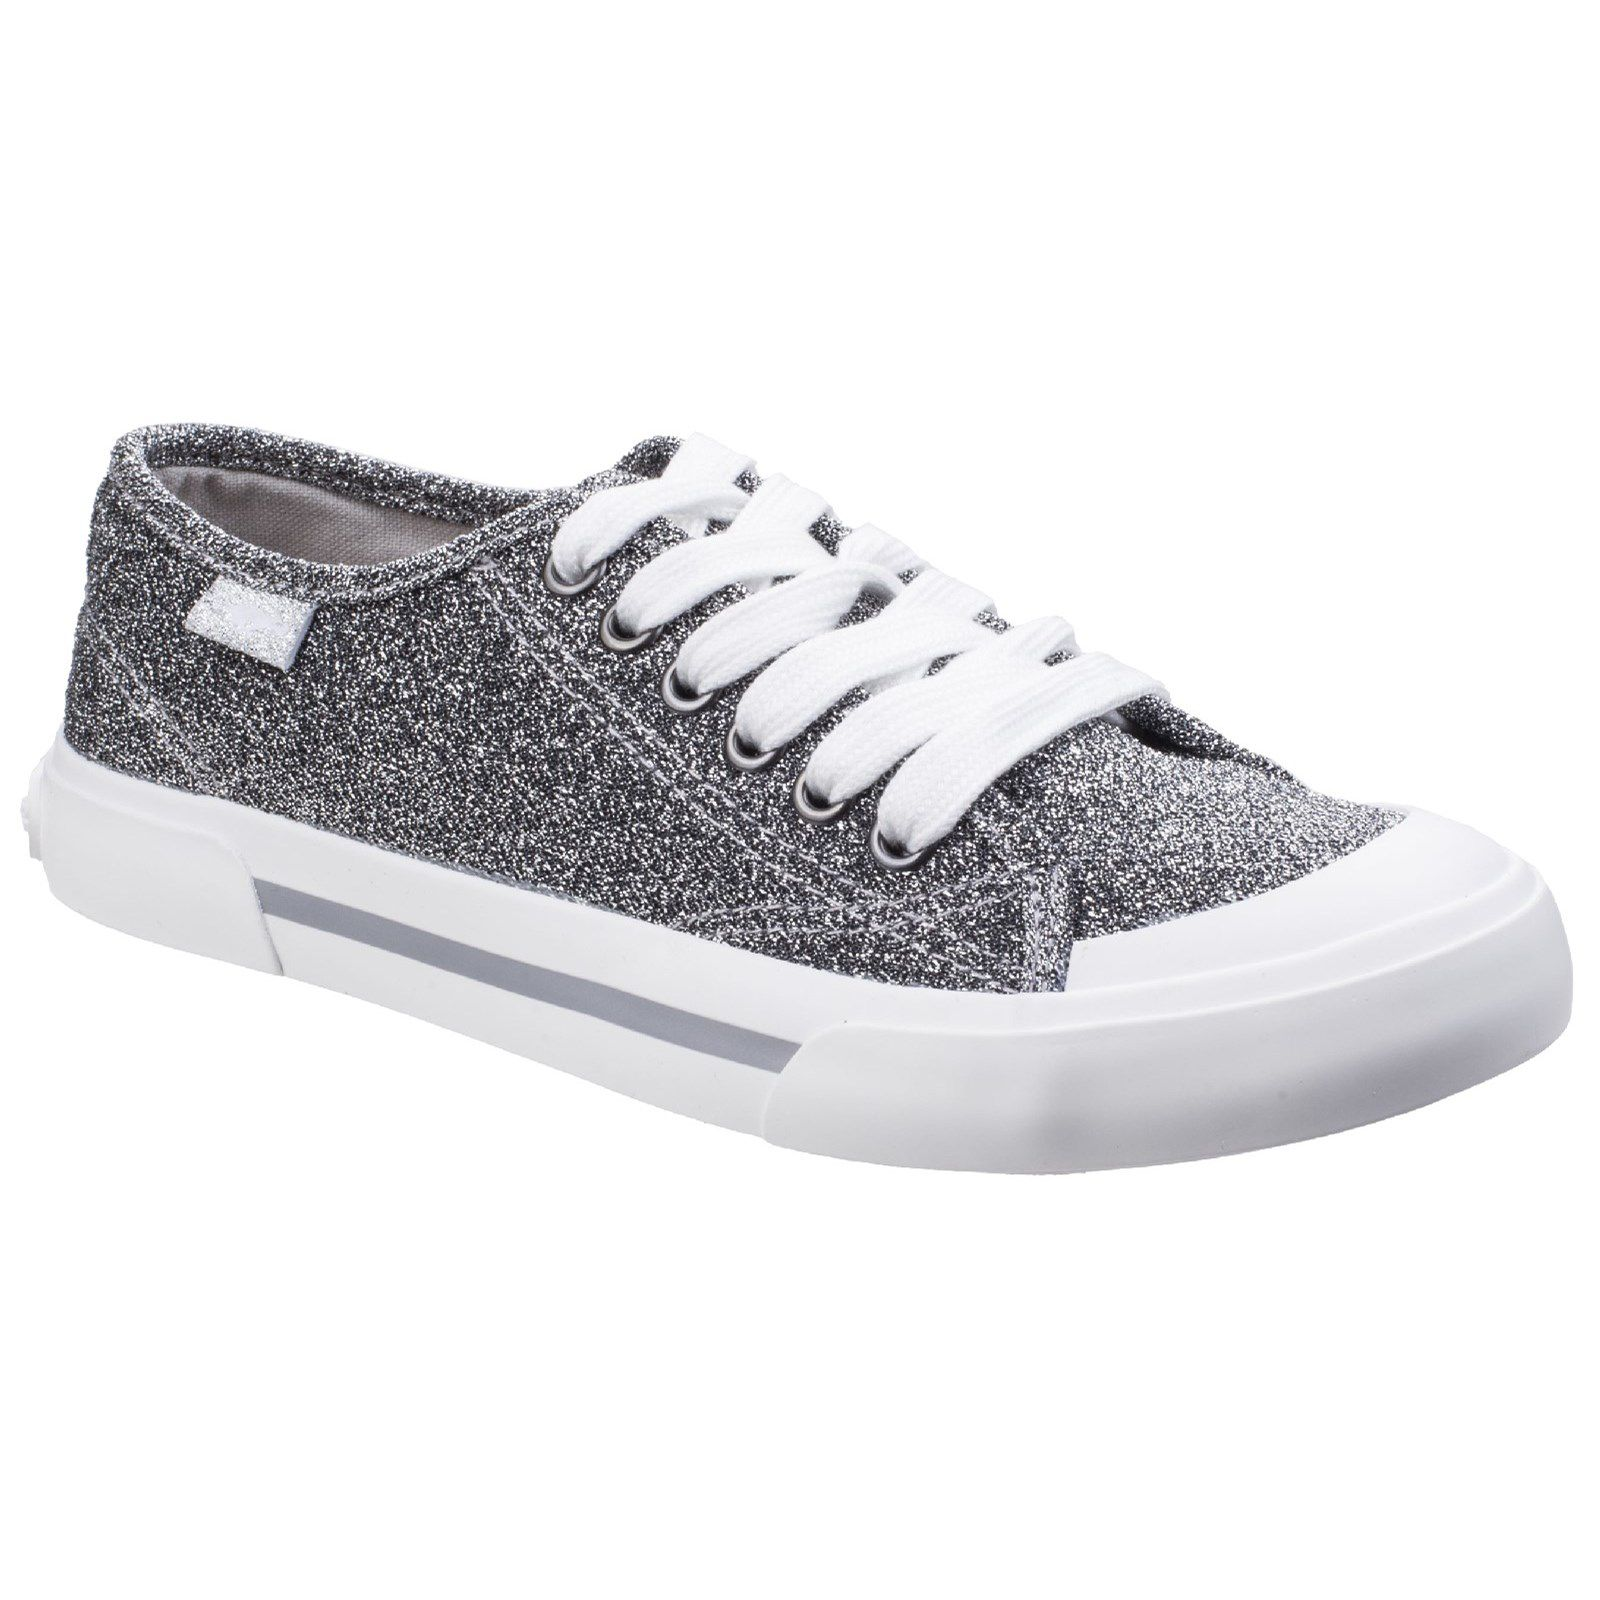 Rocket Dog Jumpin Disco Lace-Up Trainer, Silver